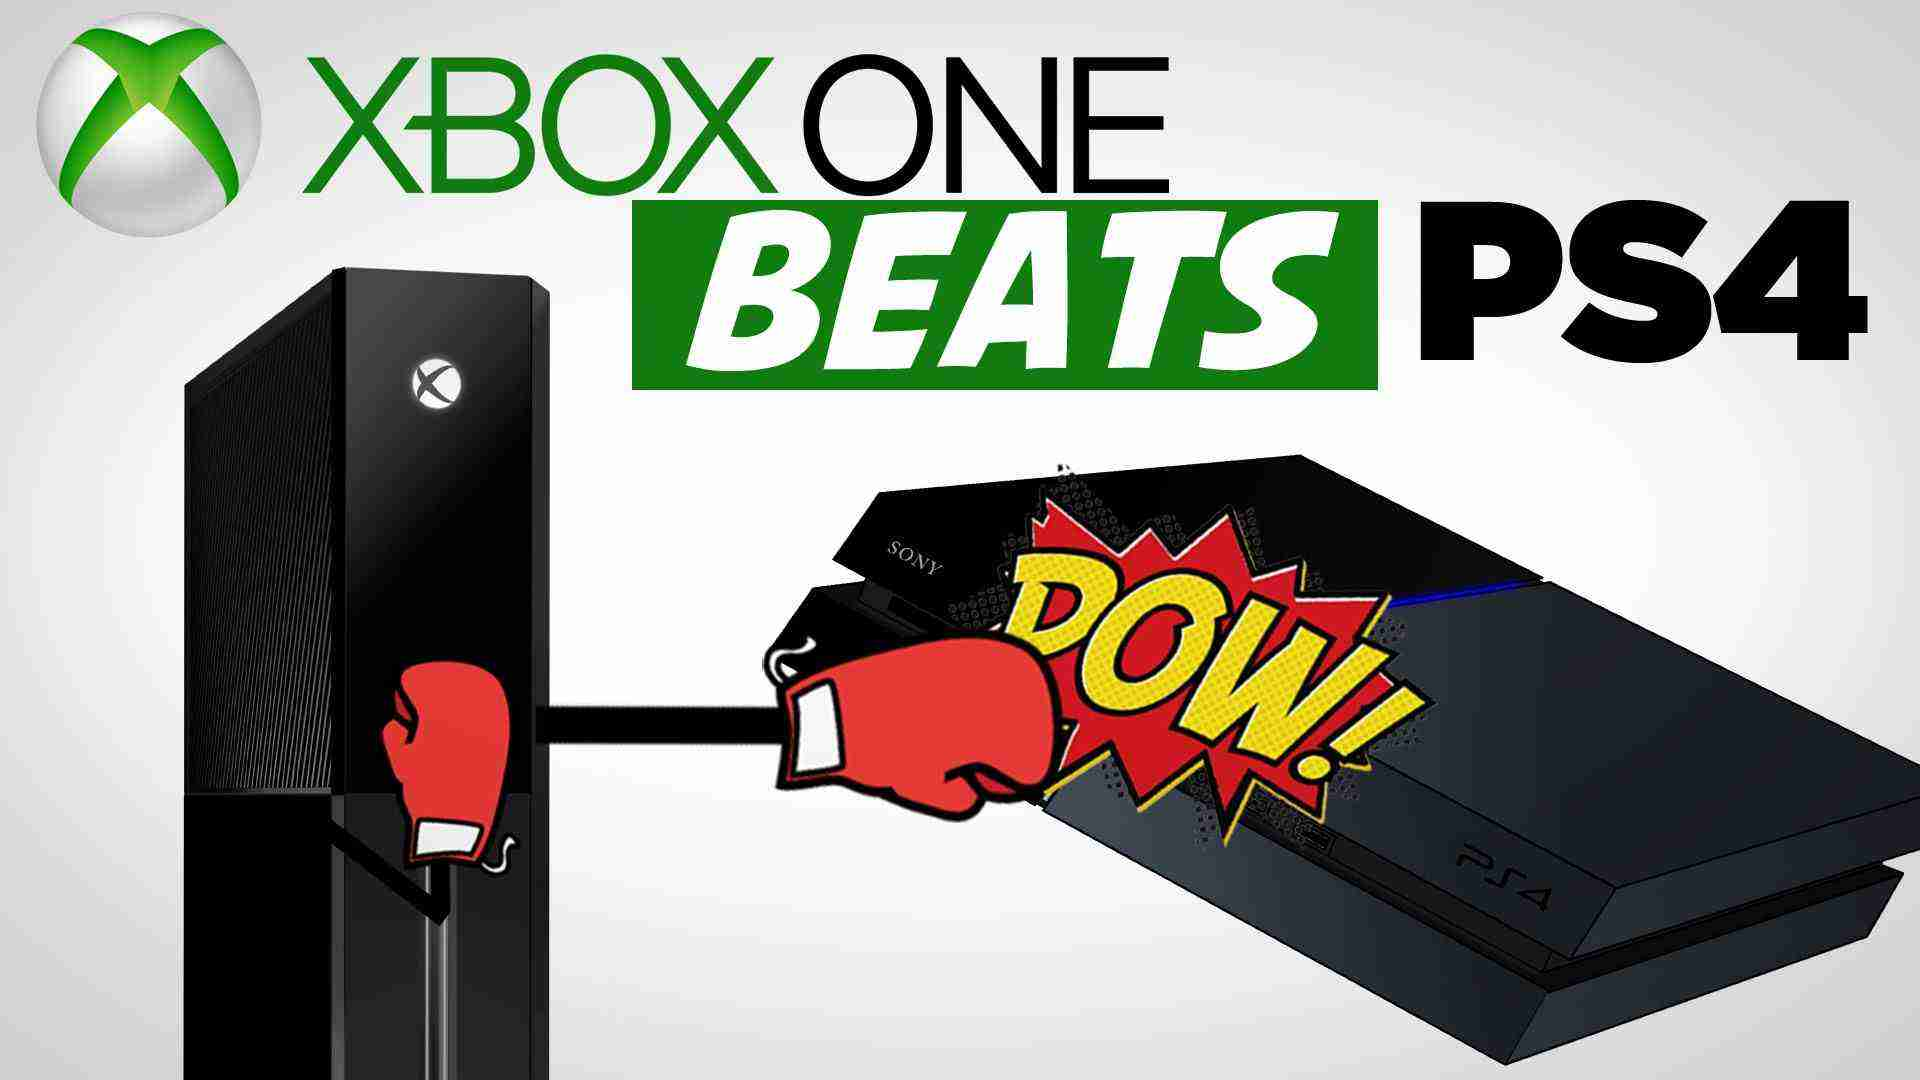 Xbox One BEAT PS4! – Inside Gaming Daily